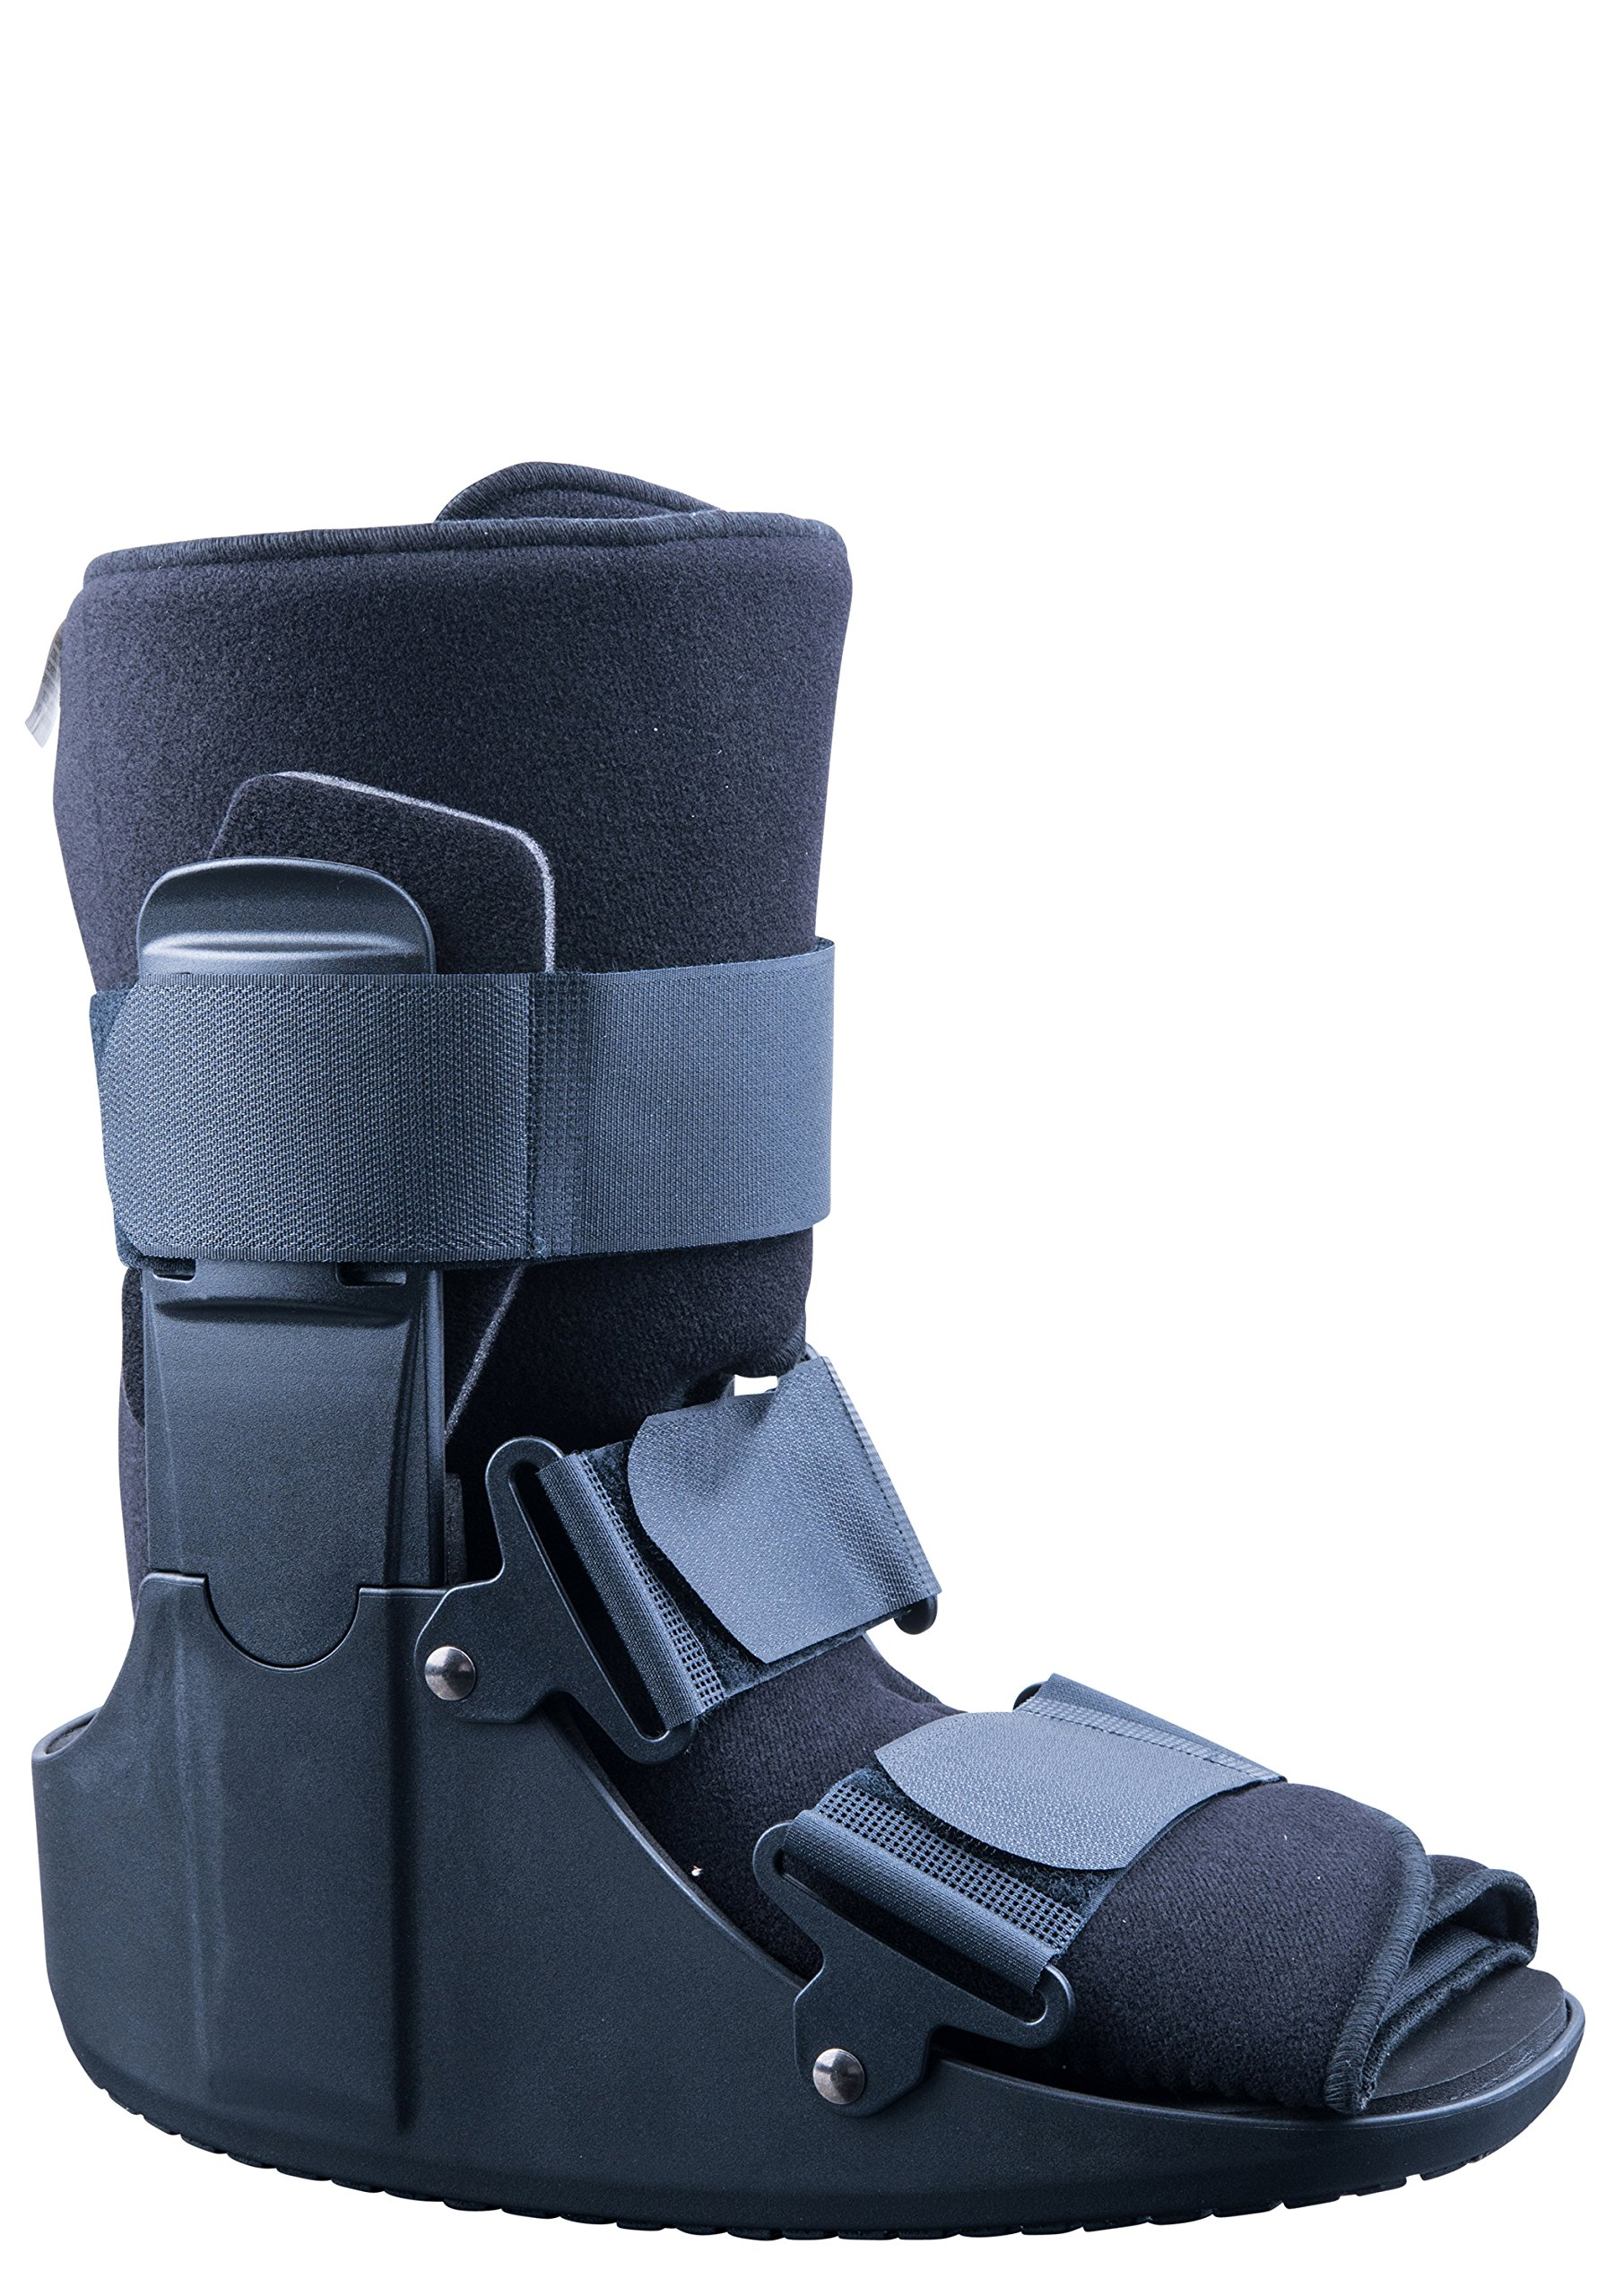 Mars Wellness Premium Polymer Low Top Cam Walker Fracture Ankle/Foot Stabilizer Boot - XS - Updated Size Chart by MARS WELLNESS